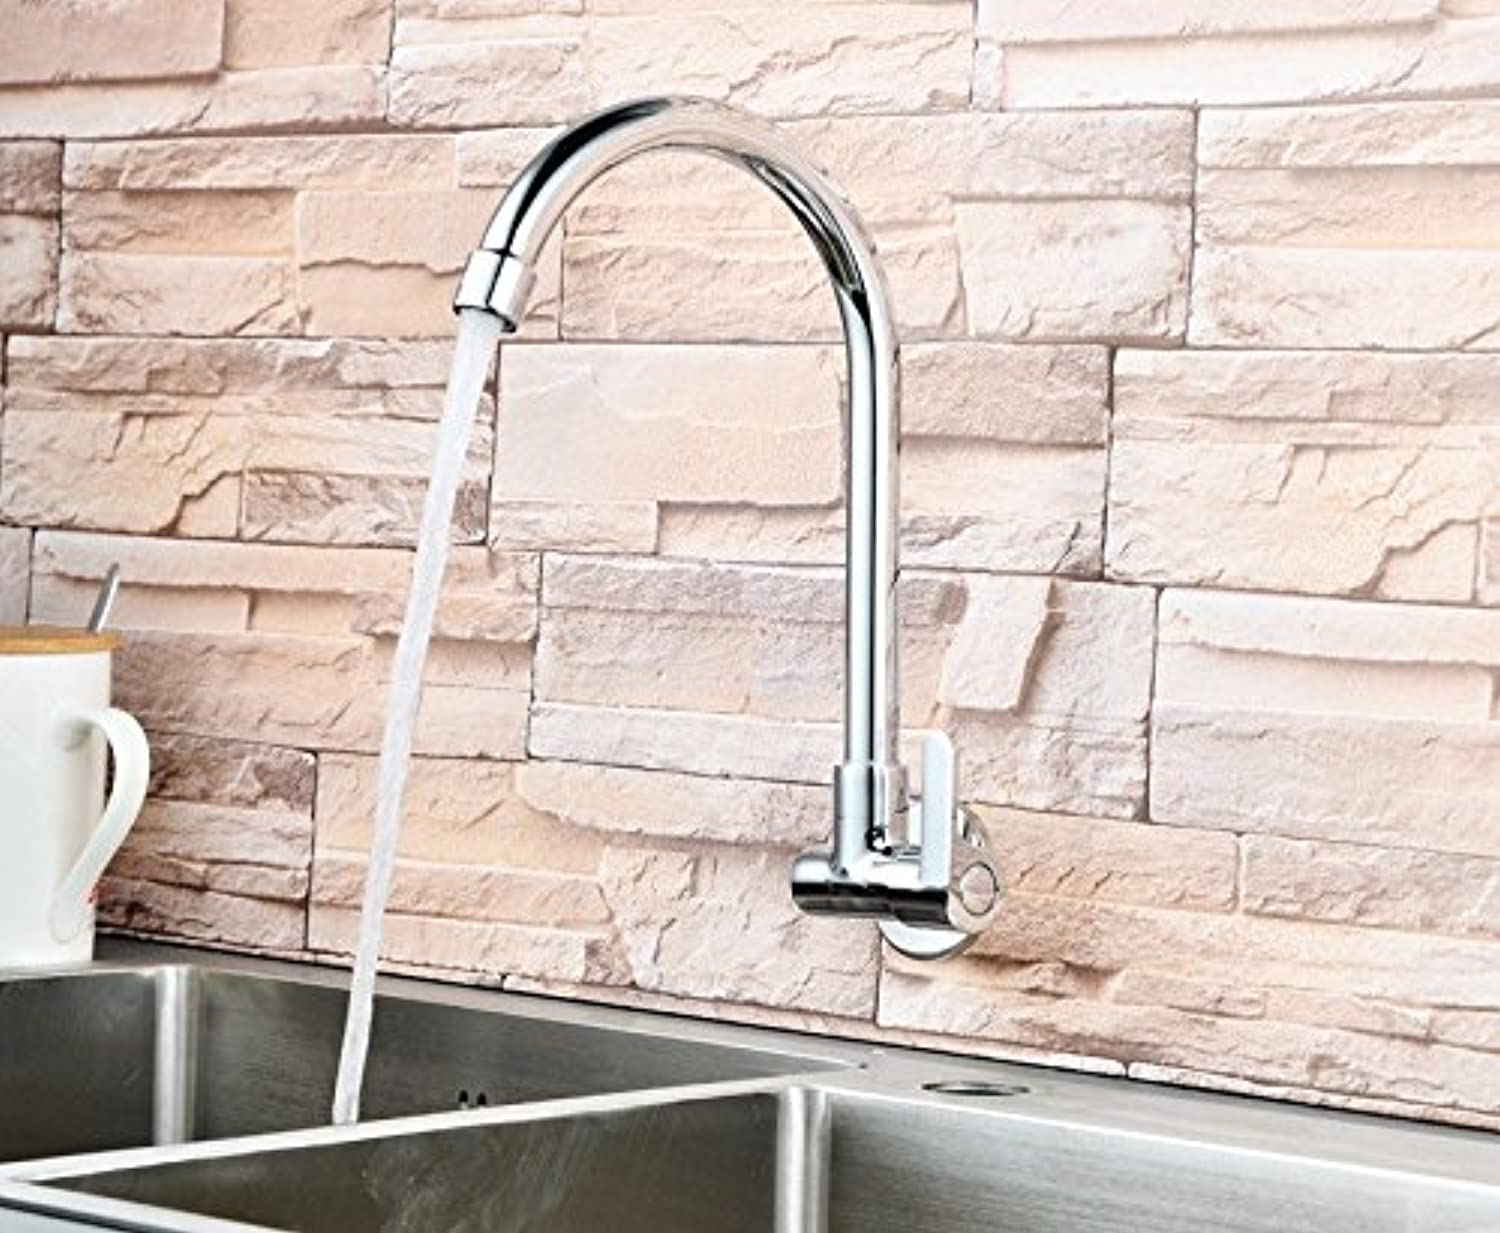 KHSKX-The Copper Cold Dishes Basin Mixer Wall Mounted Cuisine Basin Mixer Click Cold Bend The Kitchen Faucet